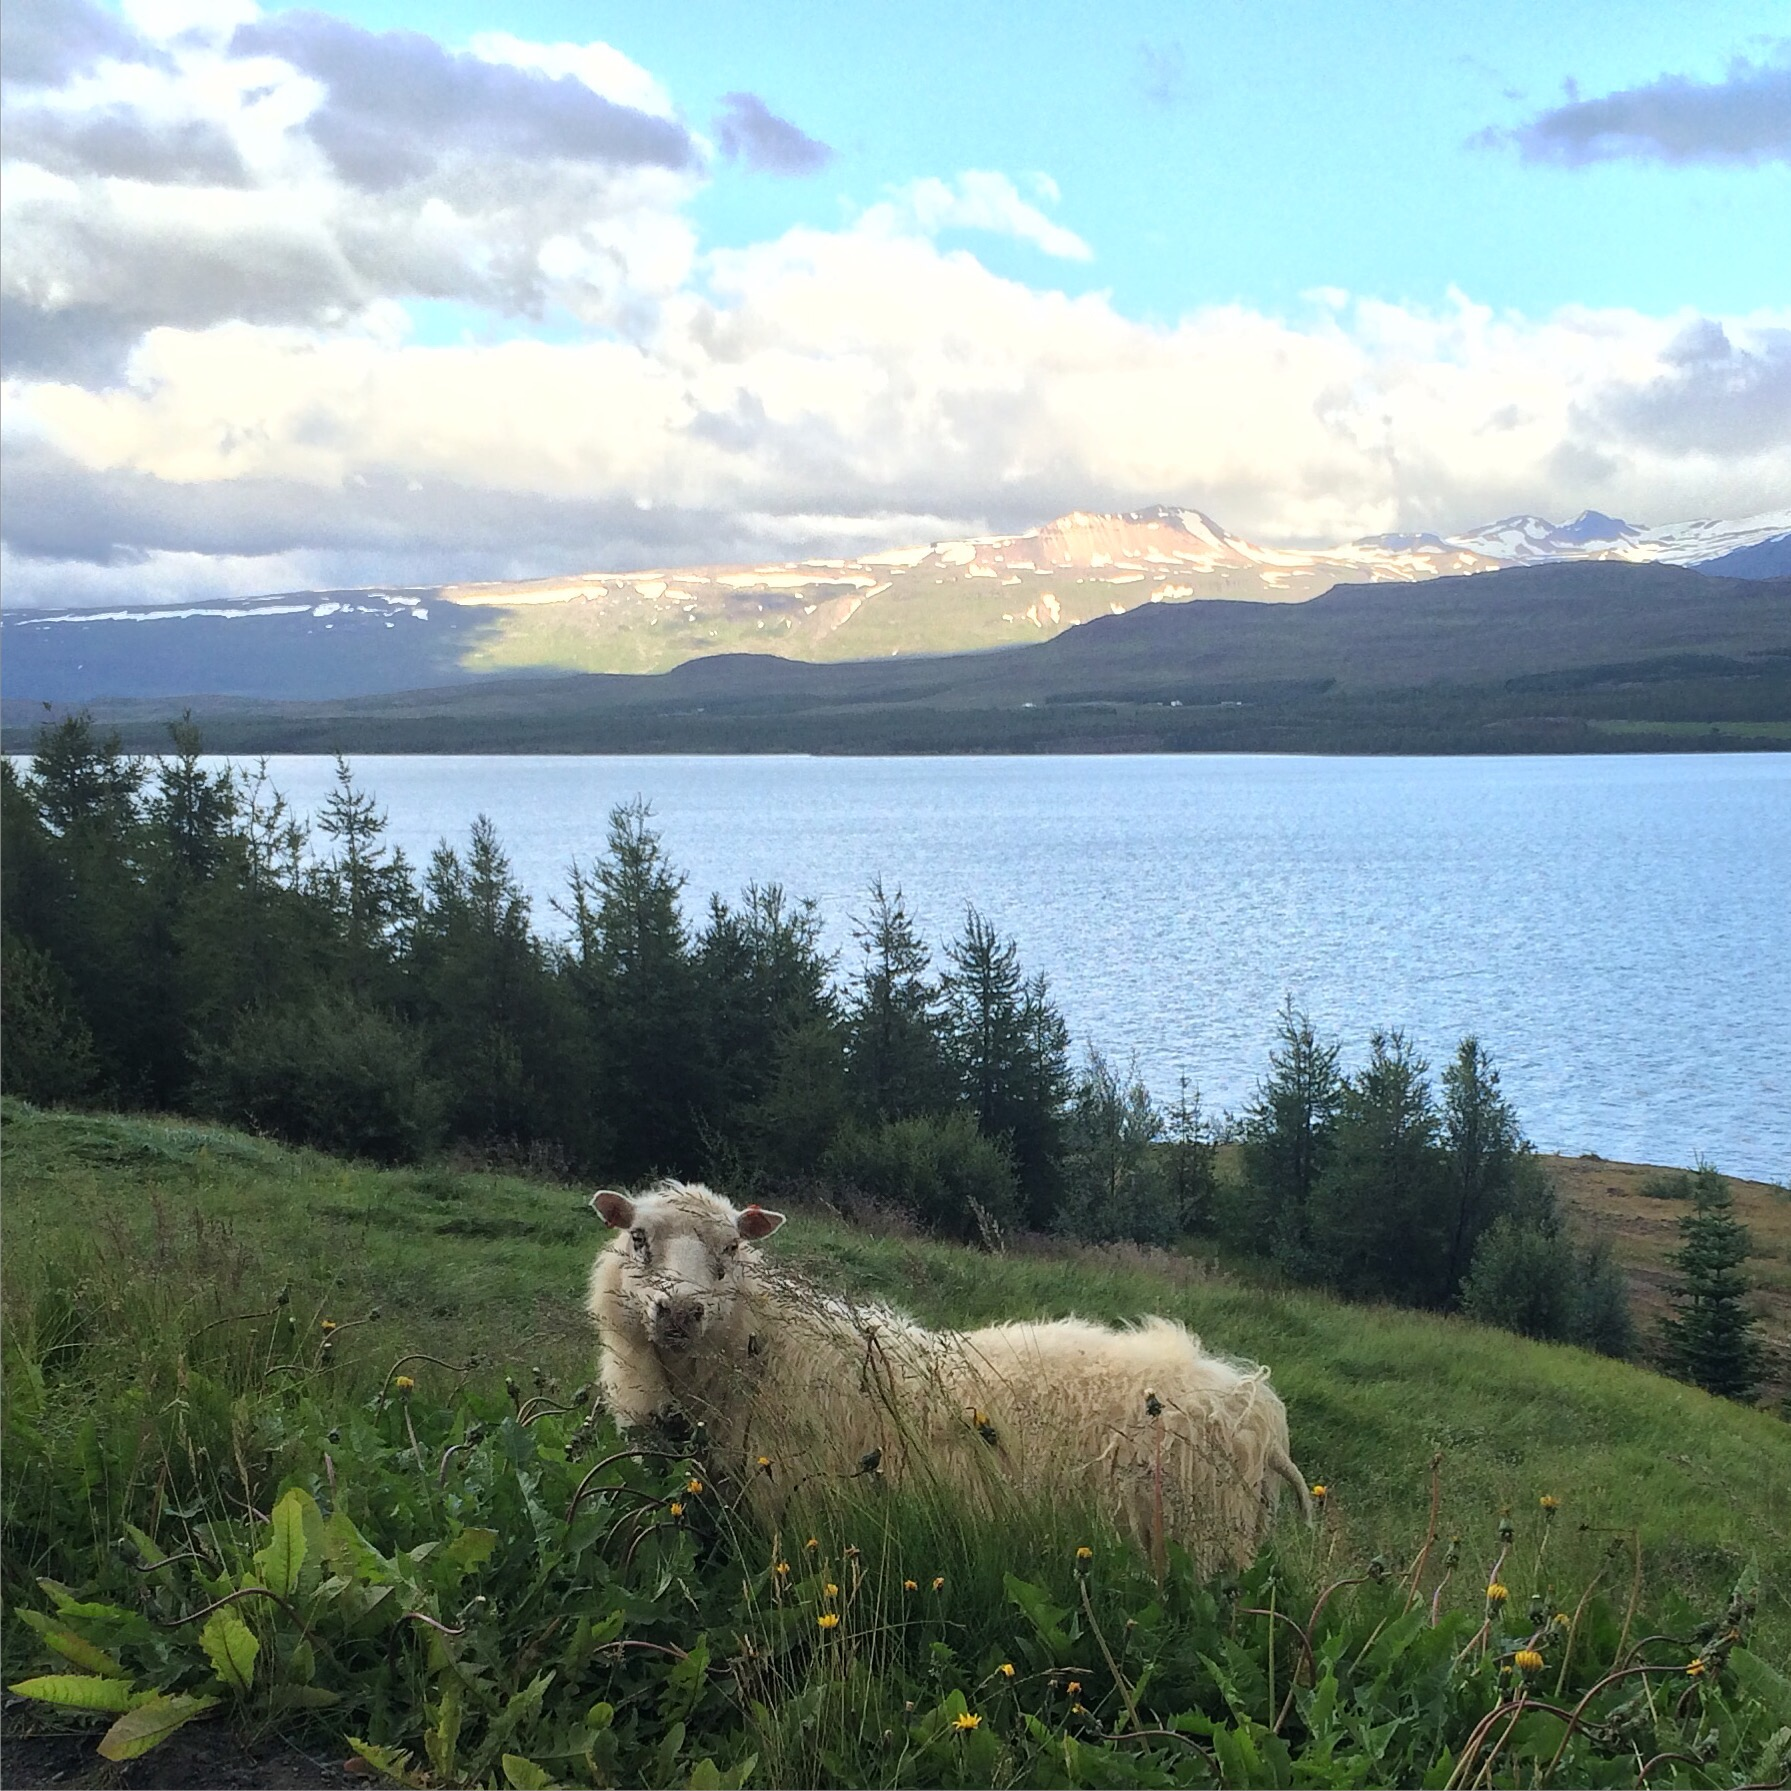 Sheep, somewhere in Iceland